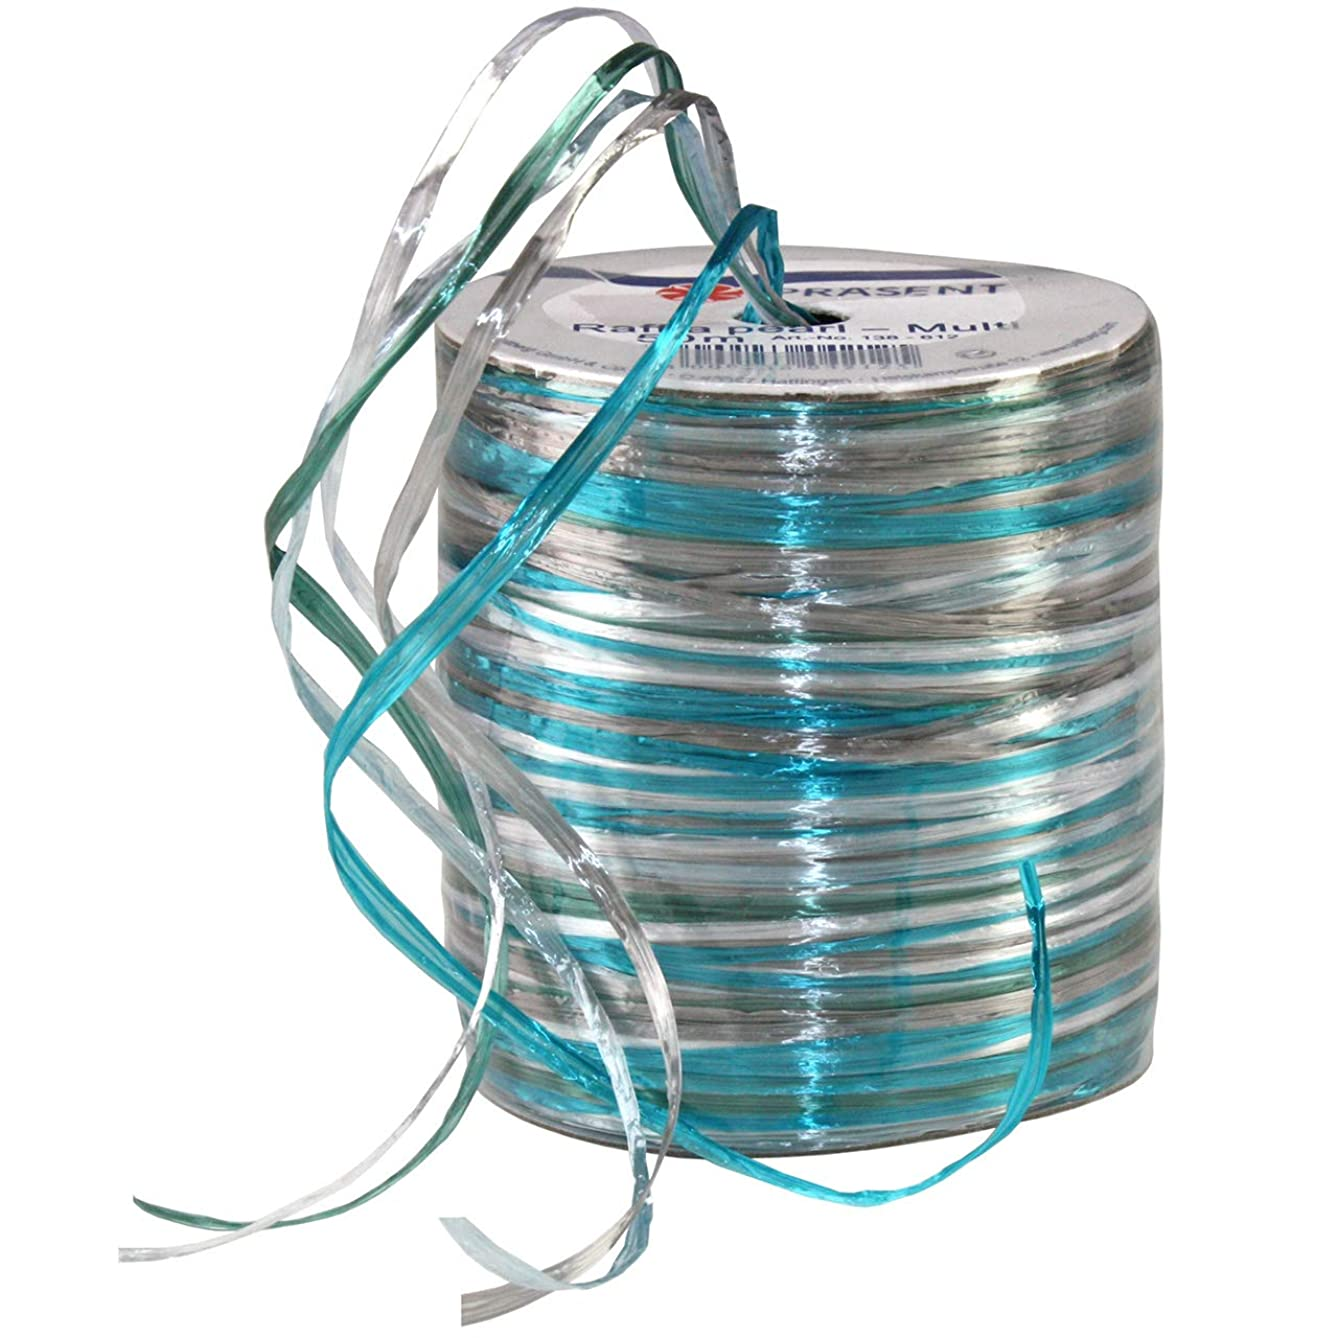 Morex Ribbon Pearl Raffia Ribbon Spool, 55-Yard, Light Blue/Turquoise